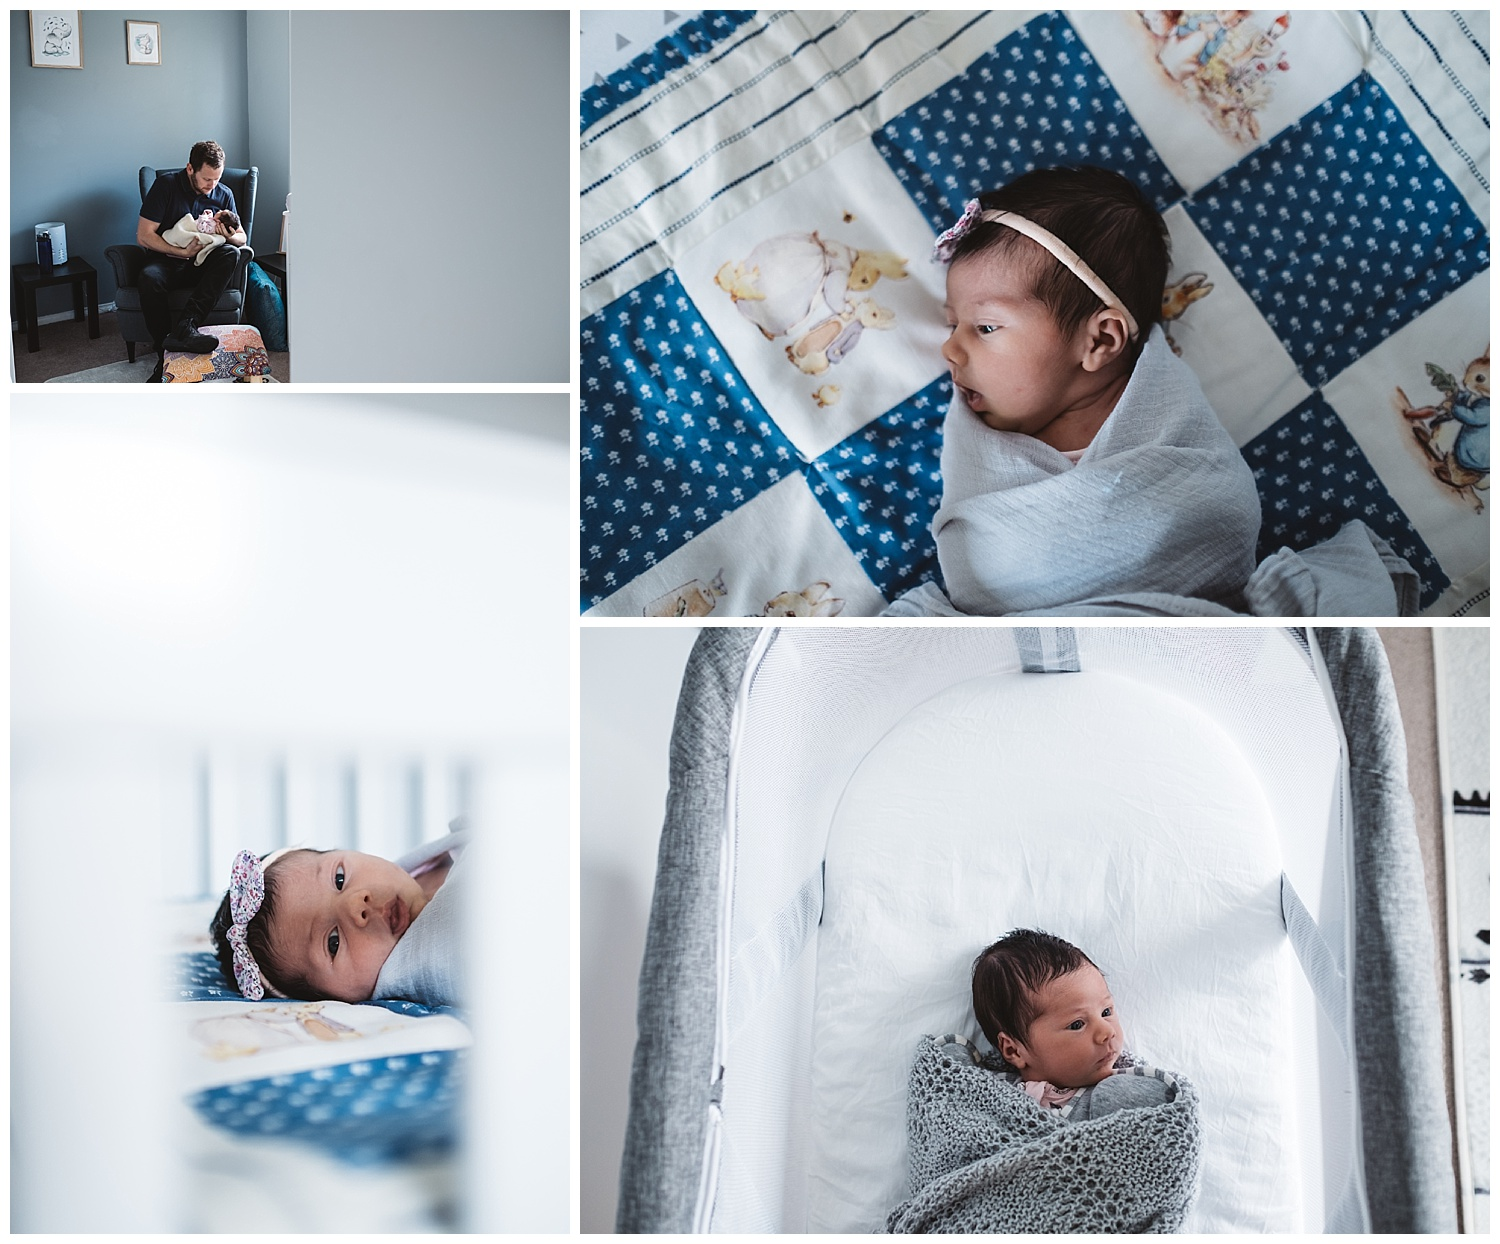 Lifestyle newborn photography in South Melbourne